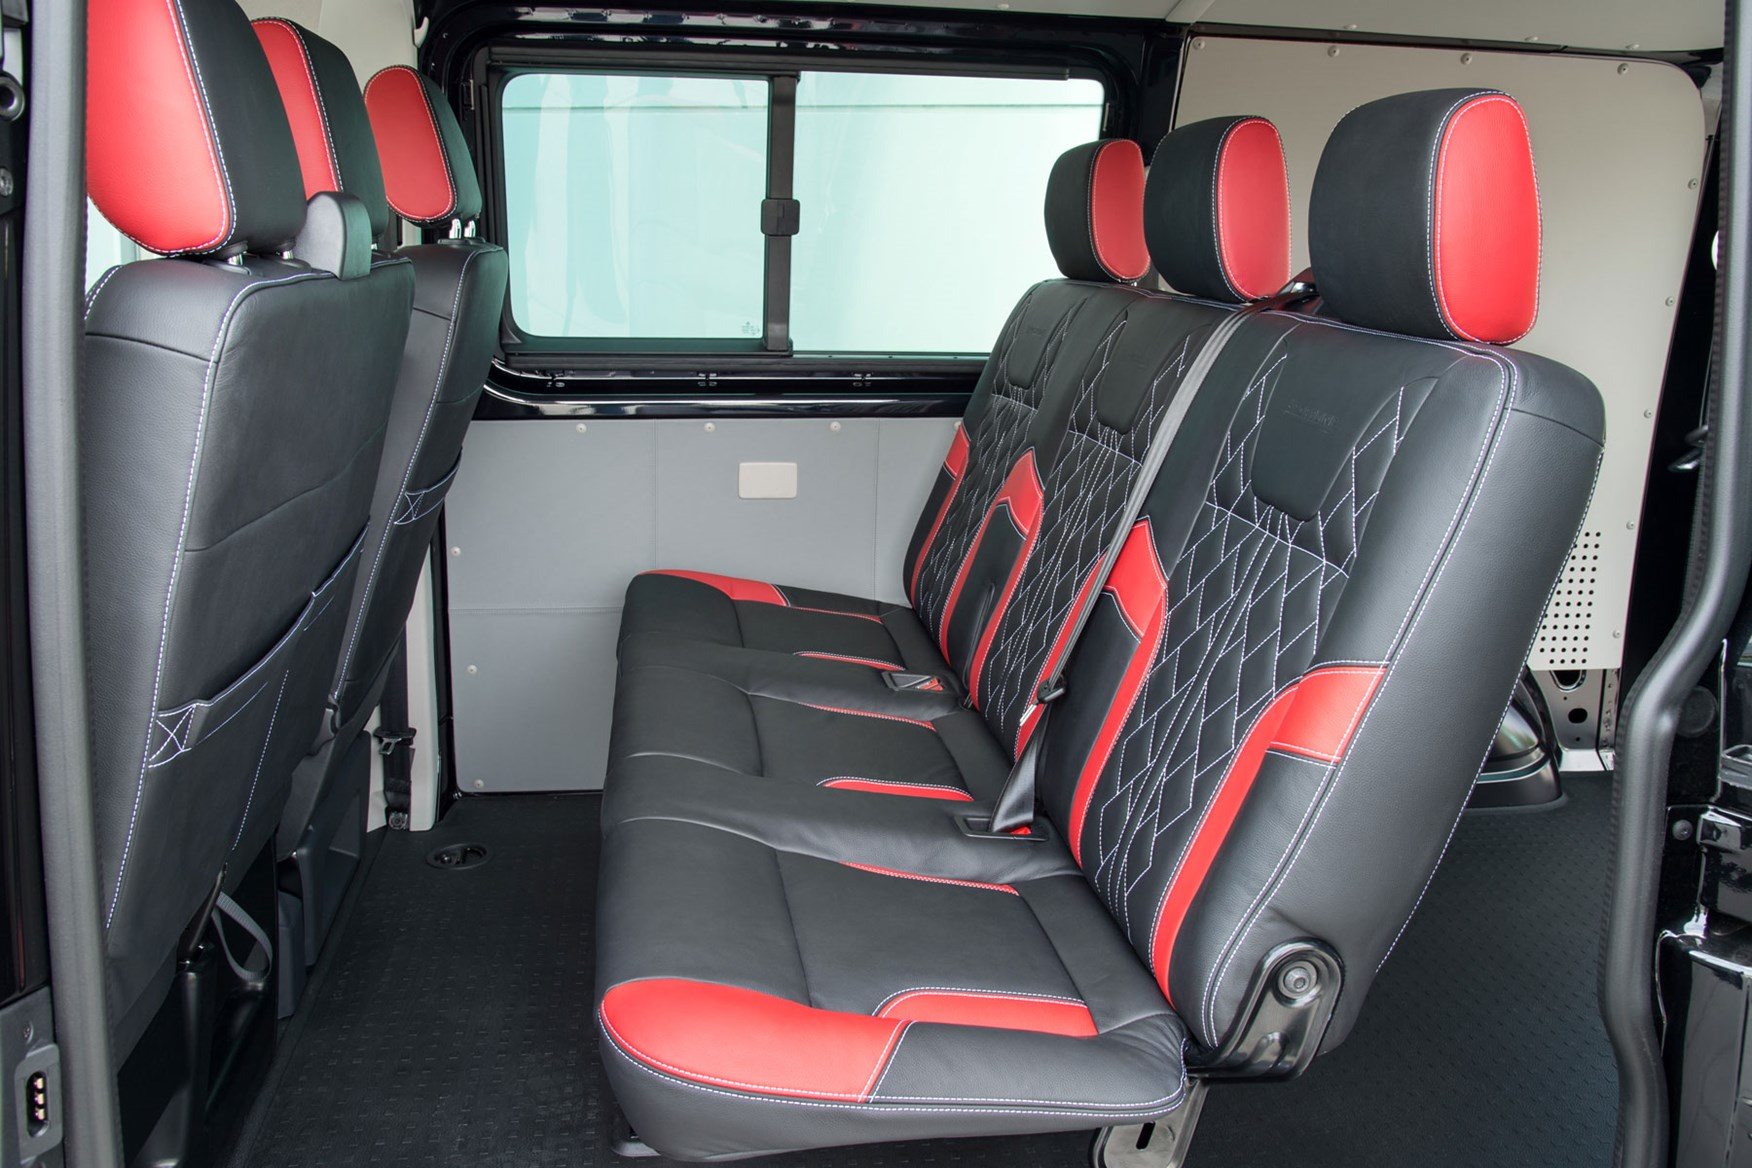 VW Transporter T6 Sportline review - kombi rear seats